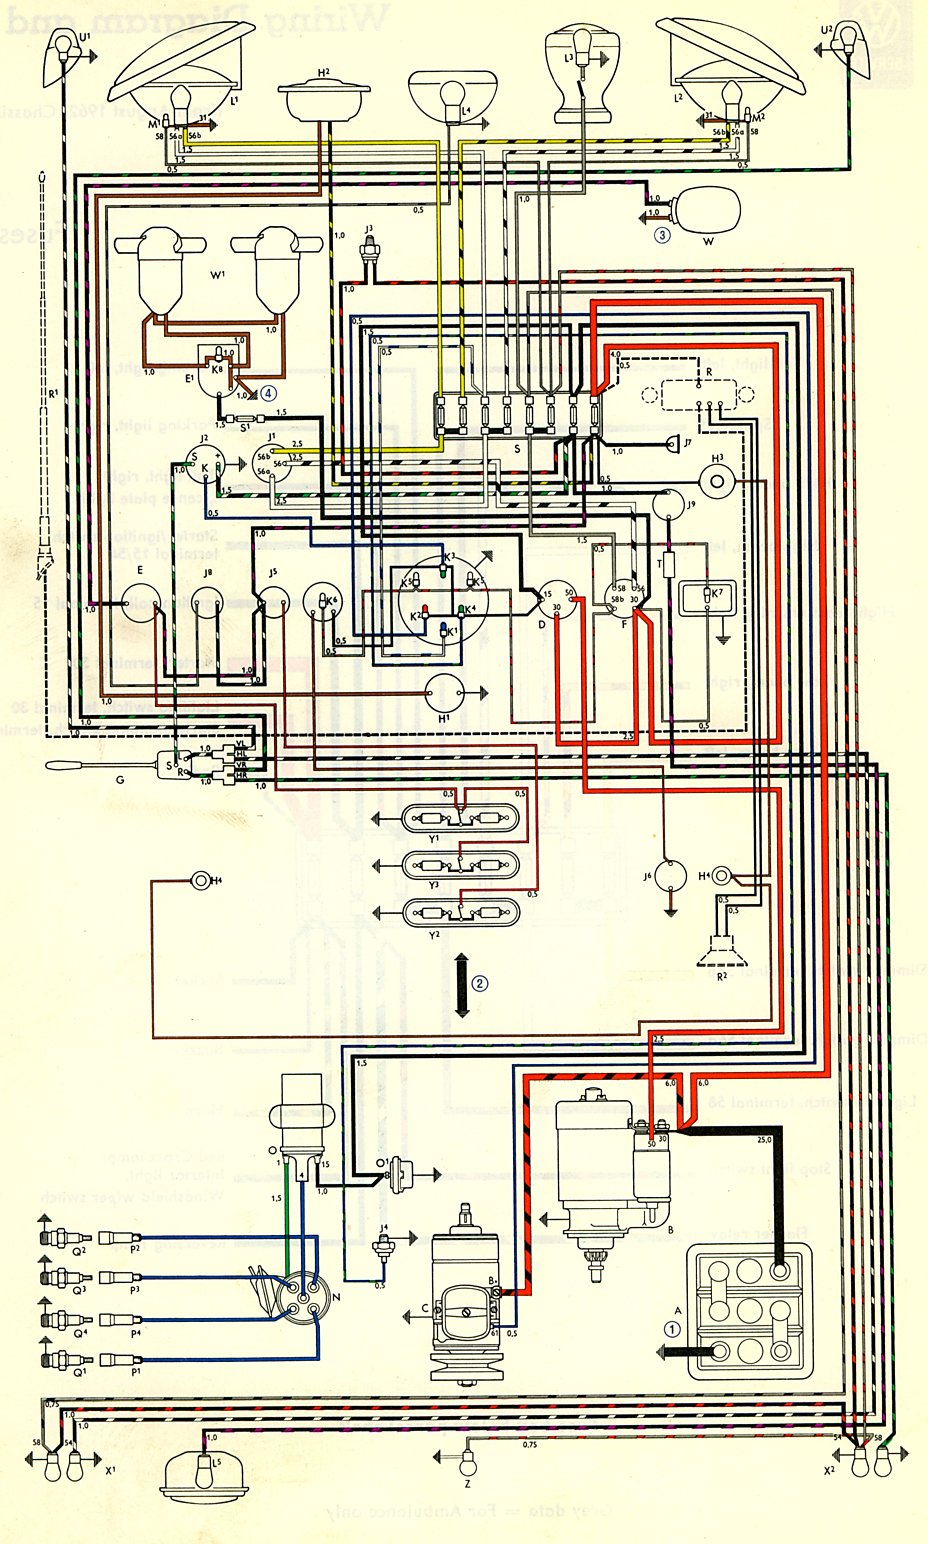 [SCHEMATICS_48DE]  DIAGRAM] Ic Bus Wiring Diagram FULL Version HD Quality Wiring Diagram -  THROATDIAGRAM.SAINTMIHIEL-TOURISME.FR | Ic Bus Wiring Diagram |  | Saintmihiel-tourisme.fr